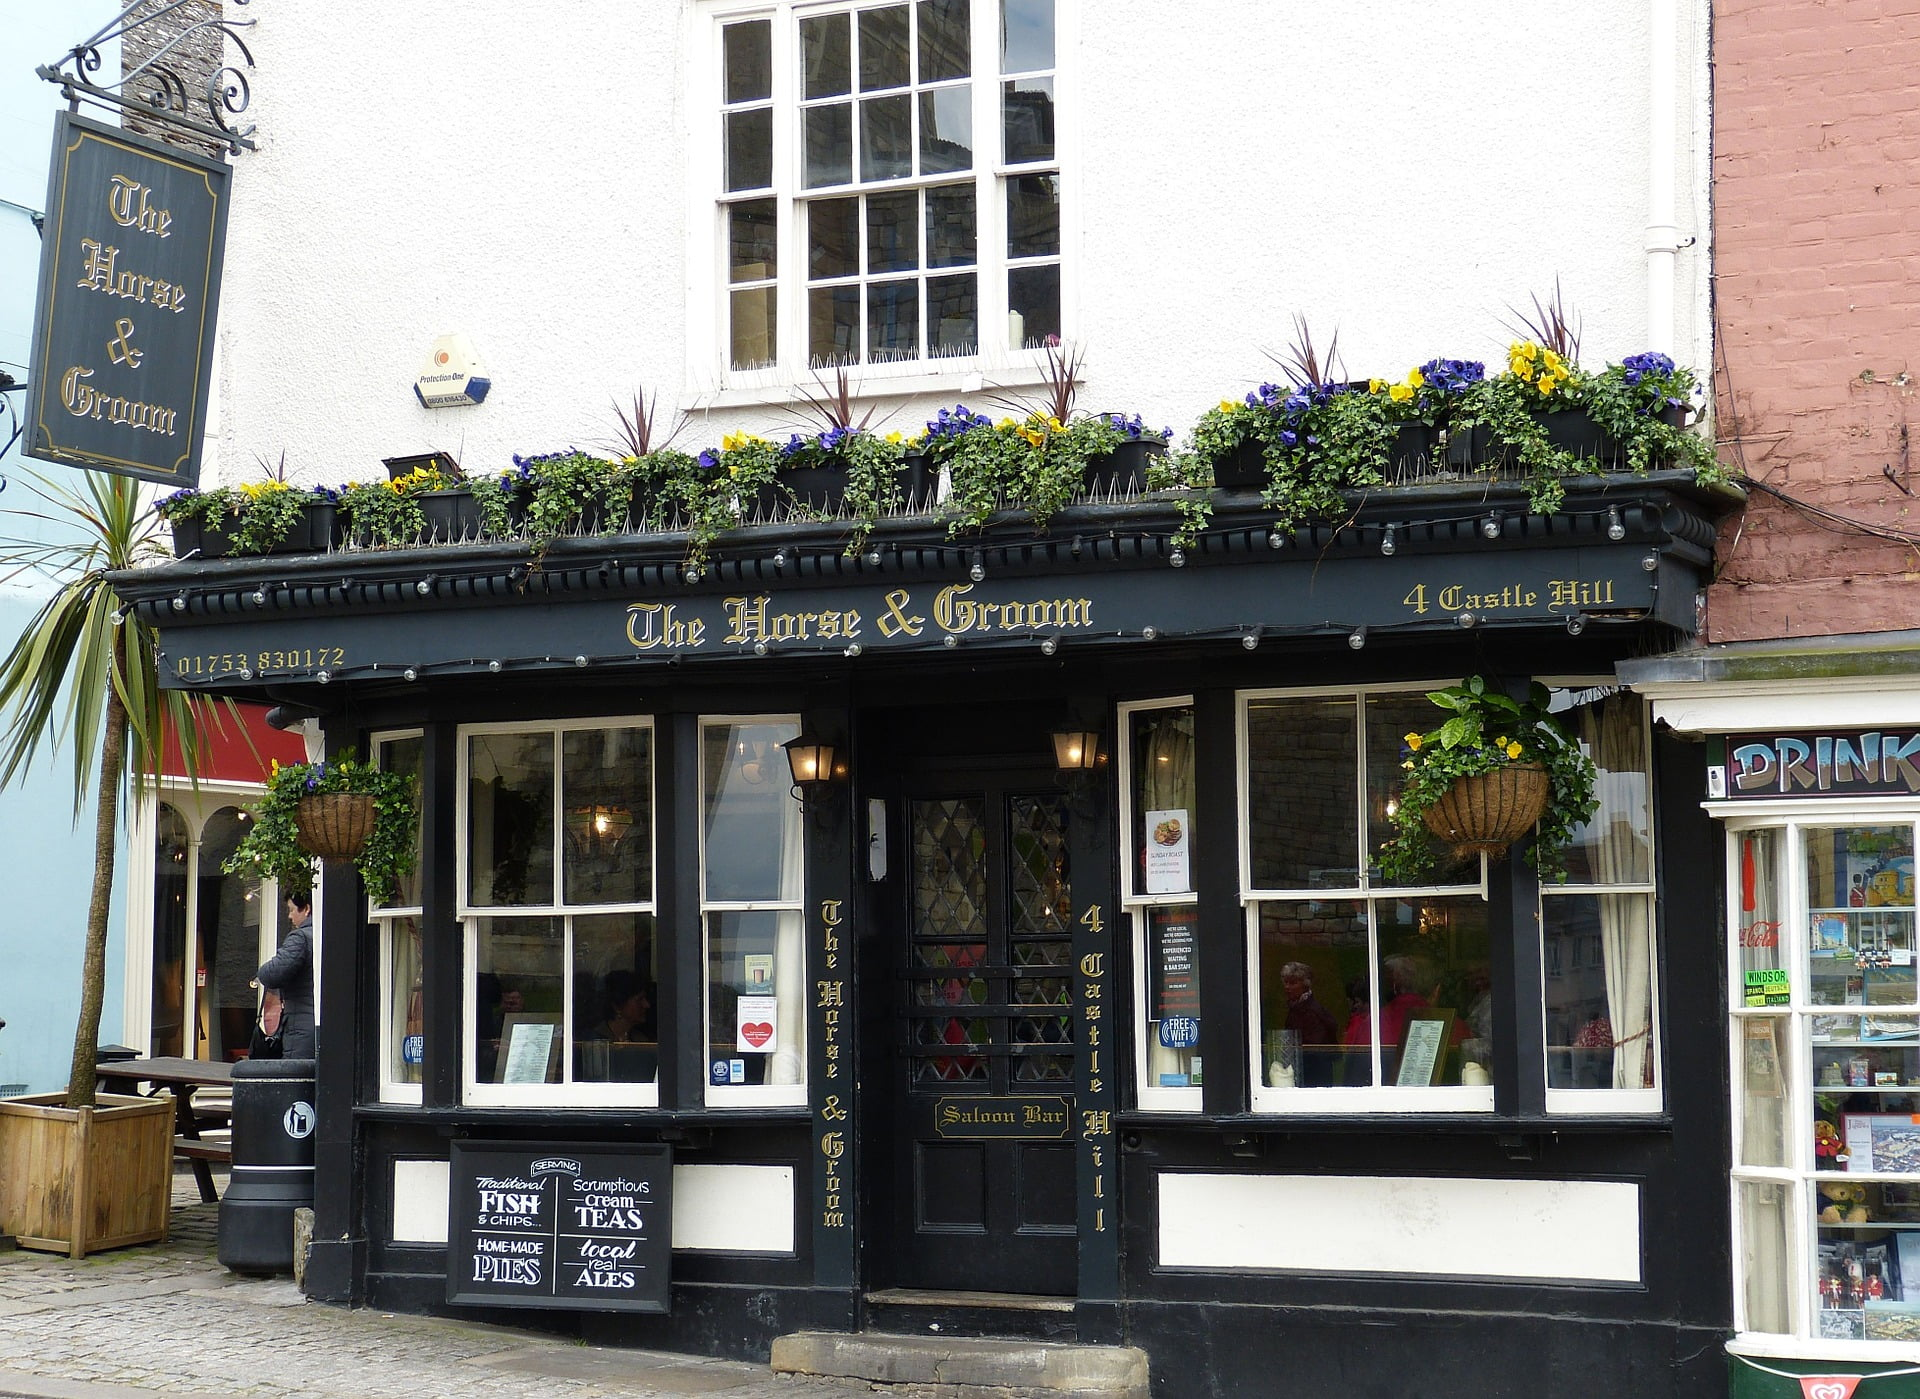 Reasons to visit London the horse and groom pub